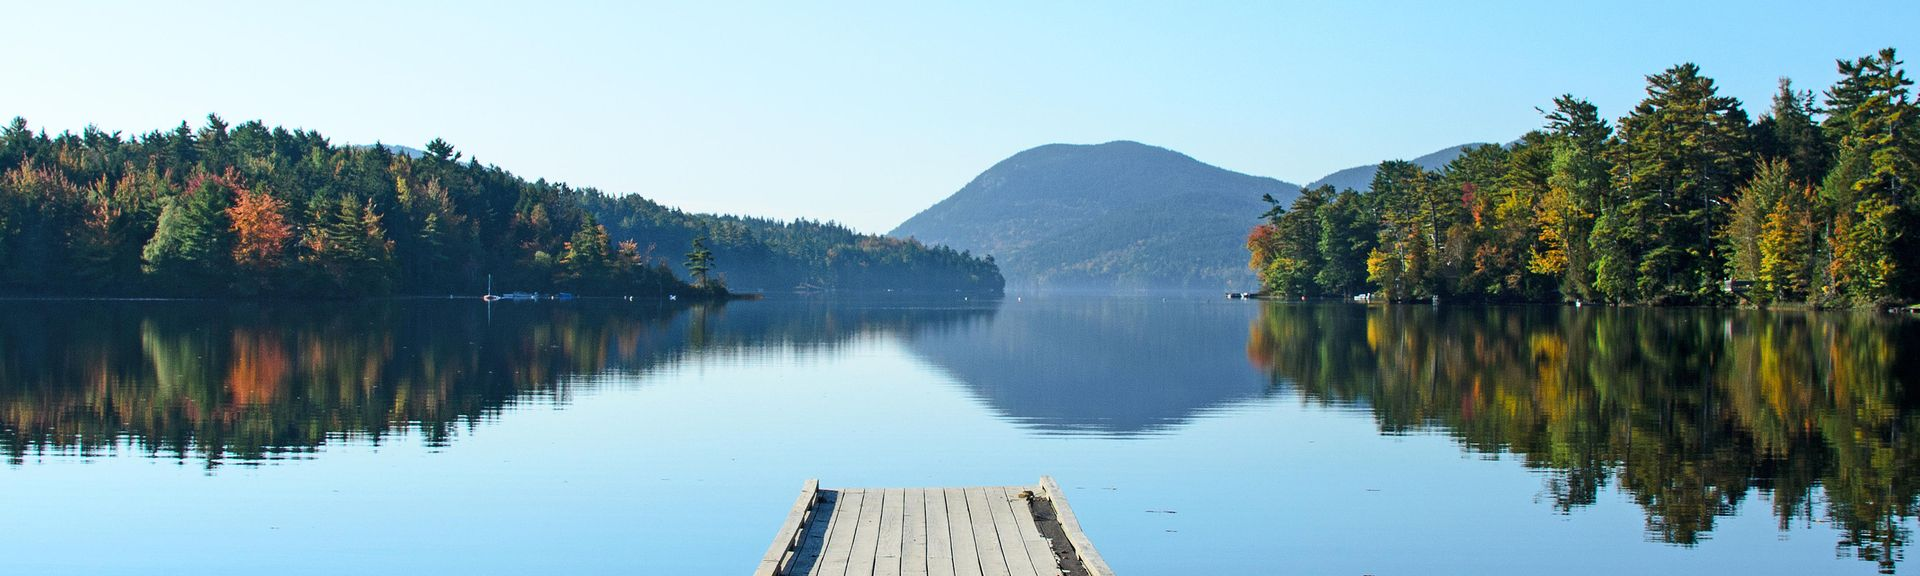 Long Pond, Mount Desert Island, ME, USA